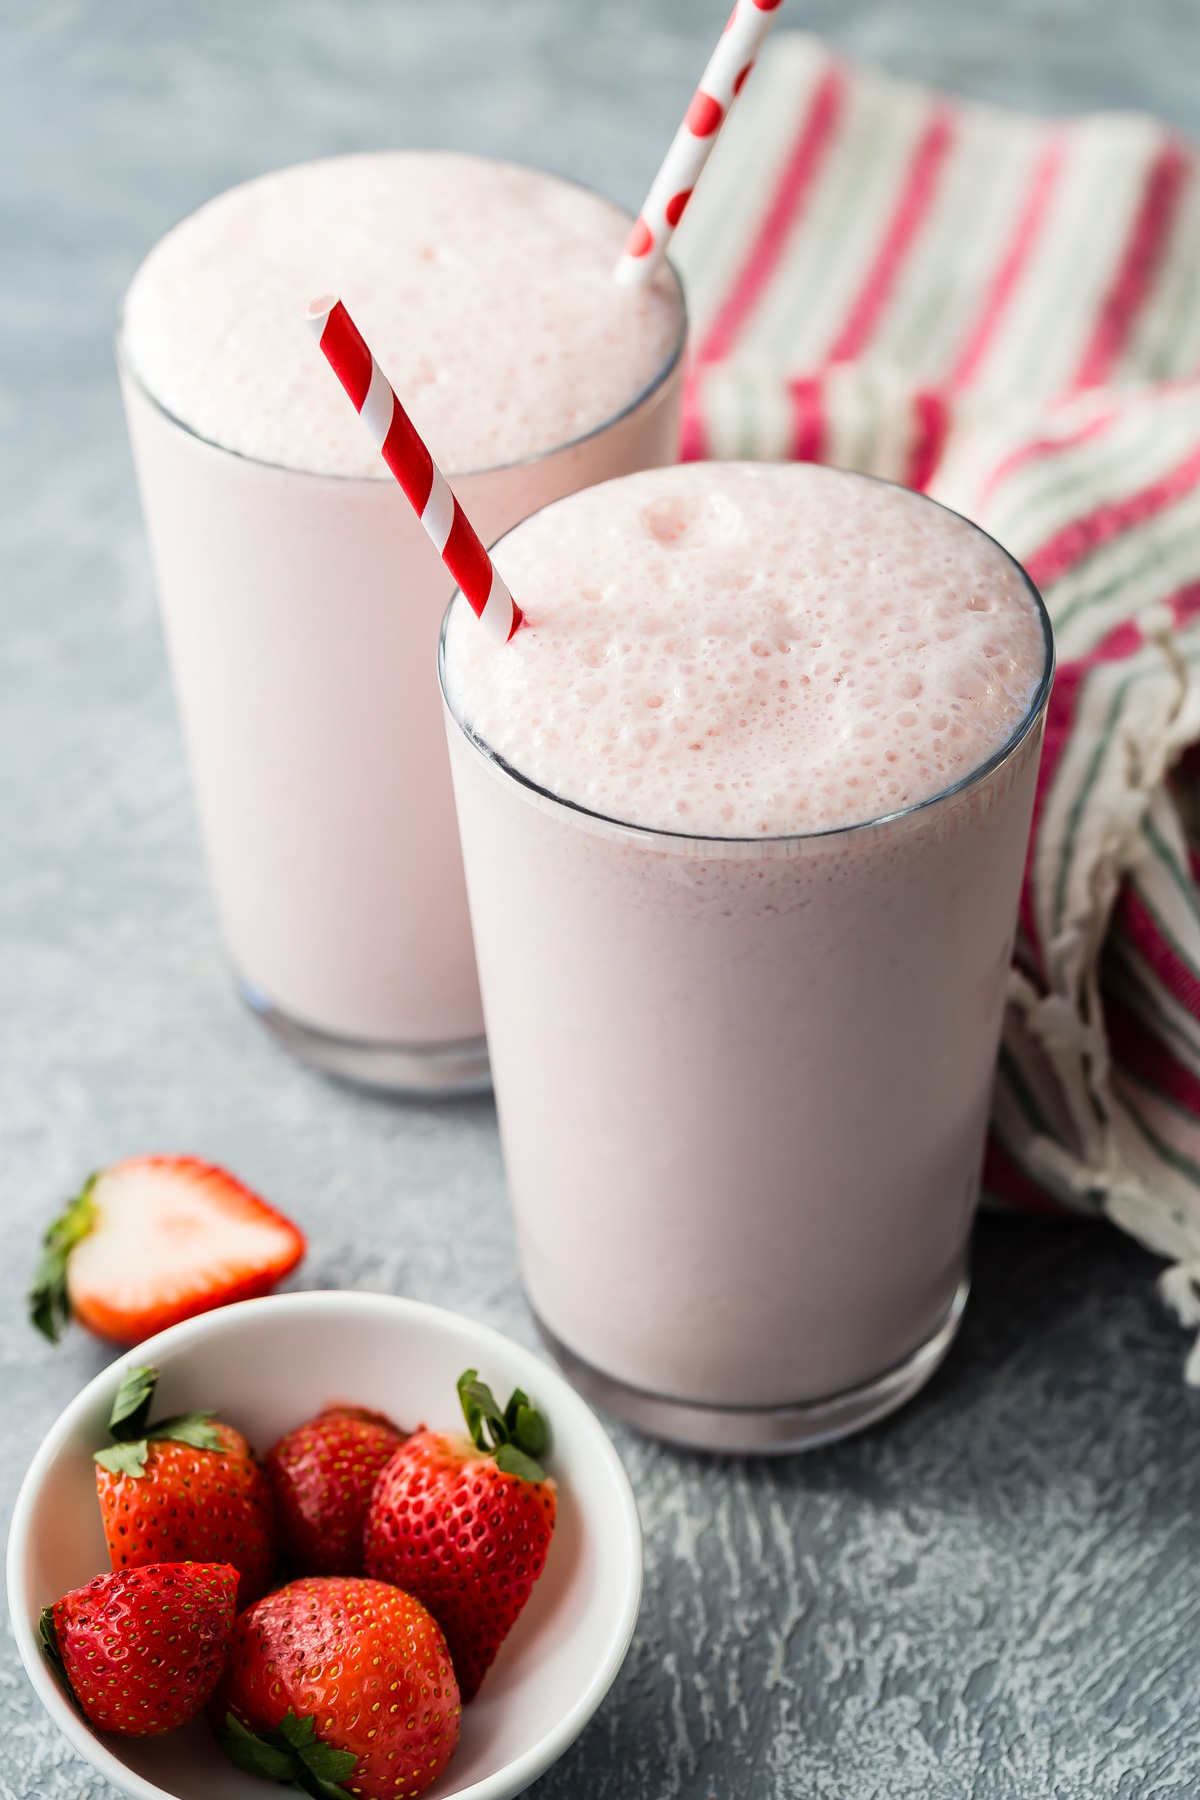 Strawberry Pink Milk recipe from Weelicious.com